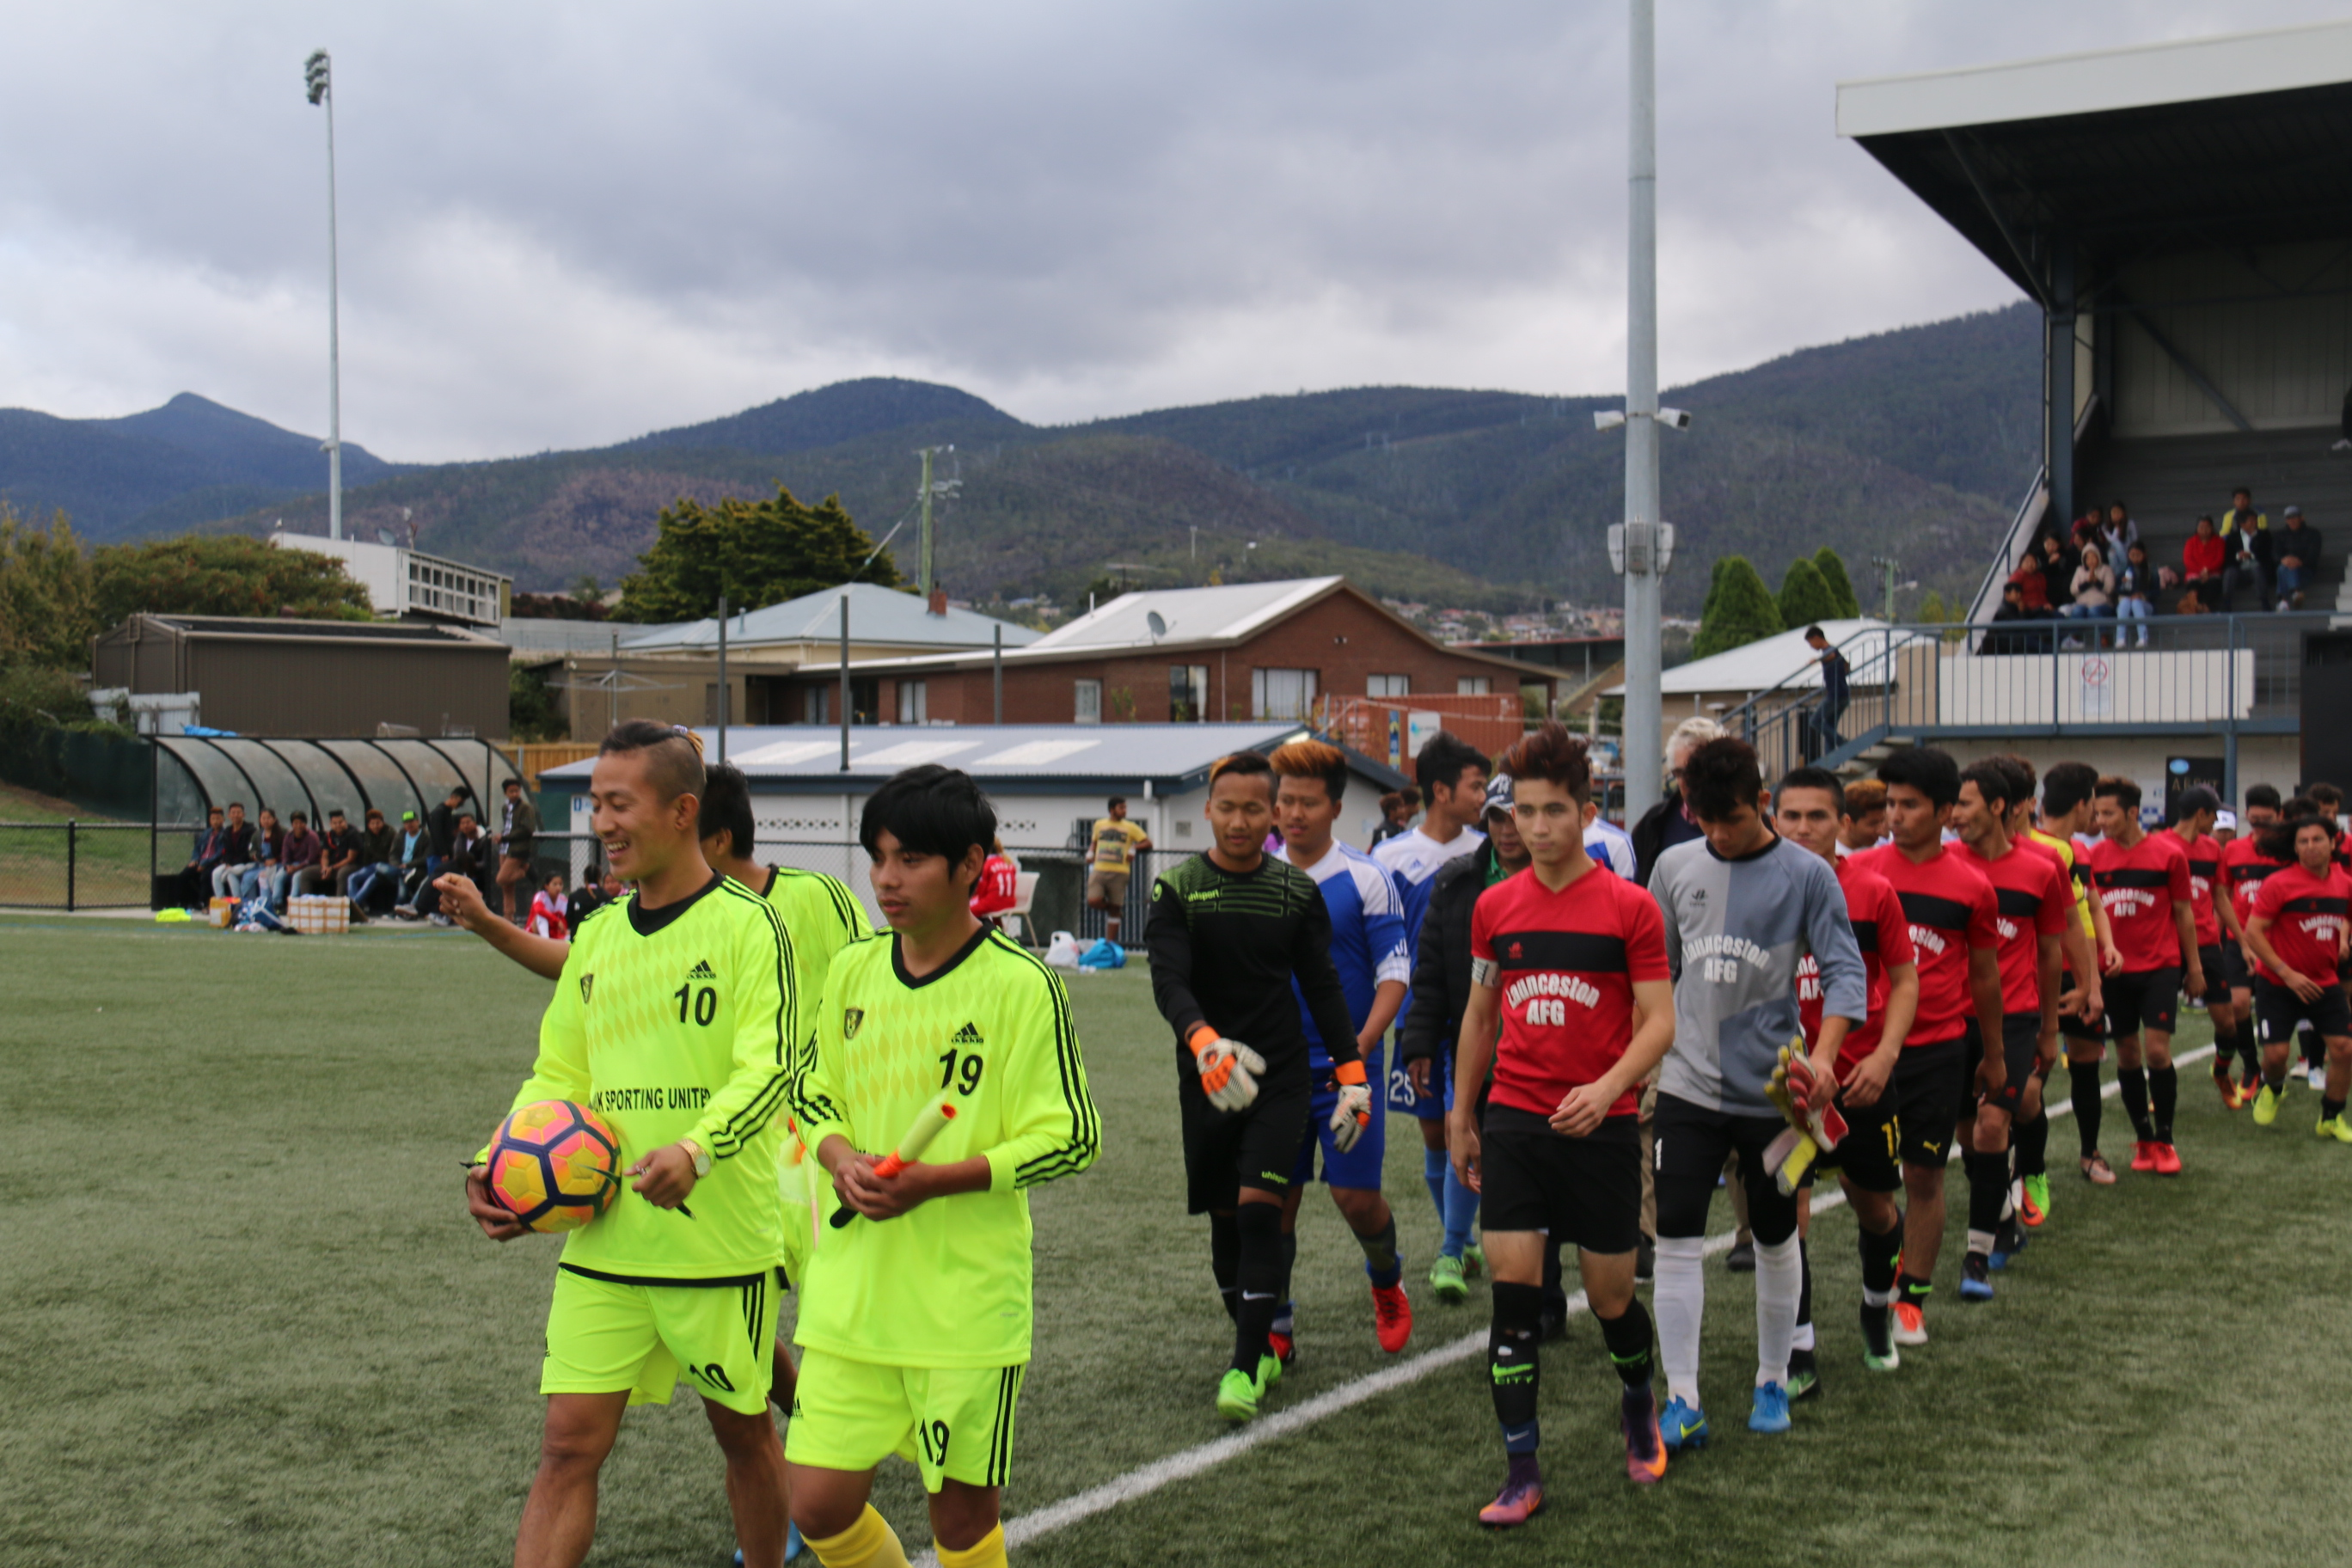 Fourth multicultural soccer in Hobart